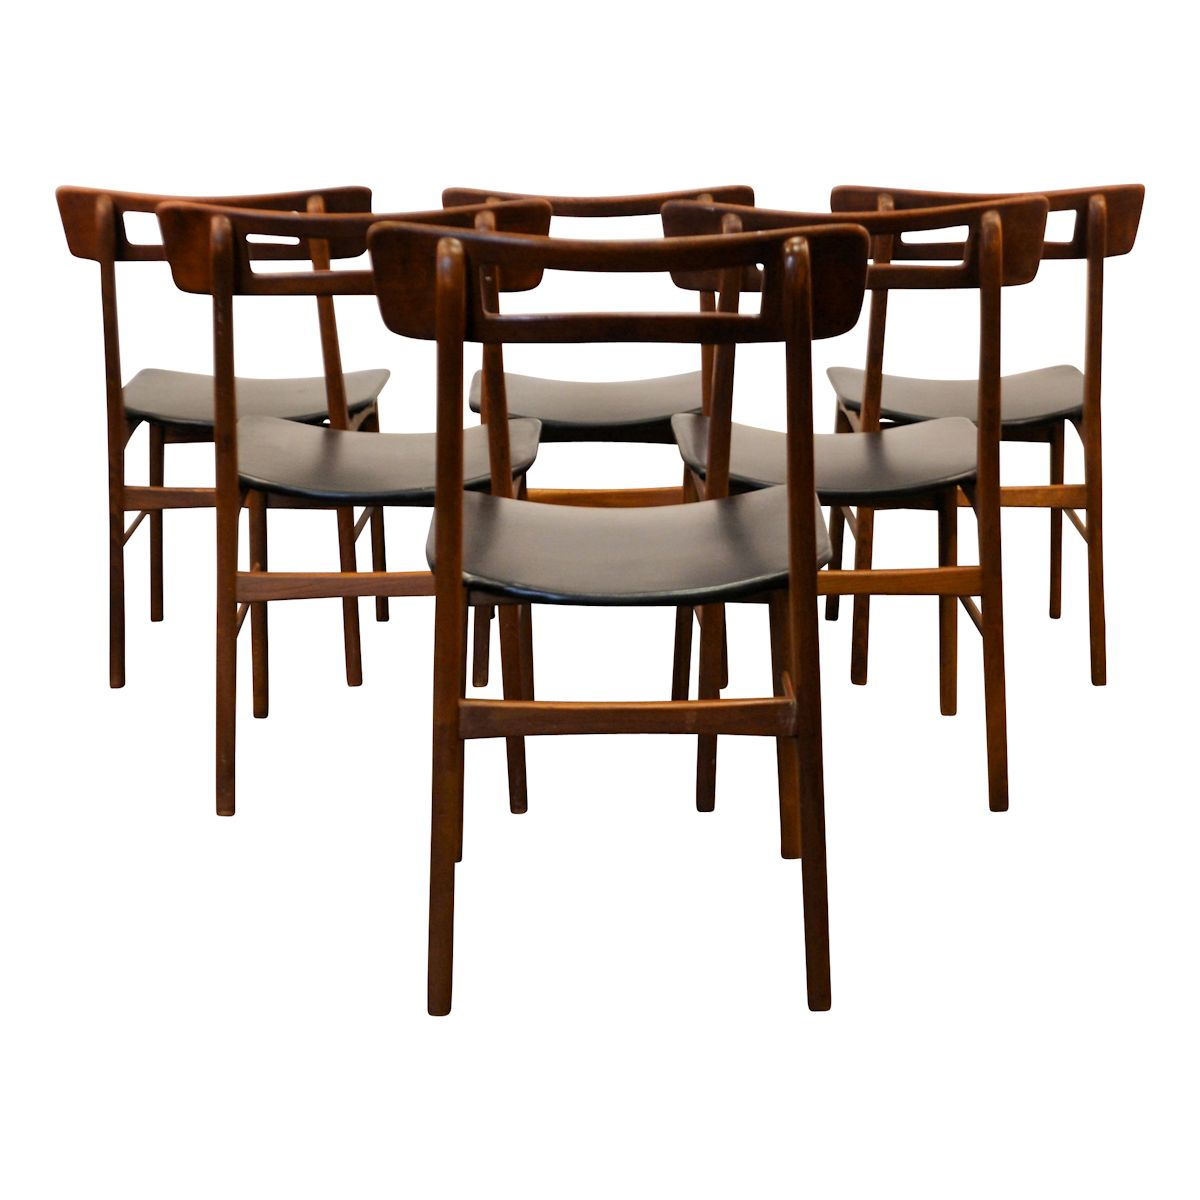 Vintage Teak Danish Modern Dining Chairs - back